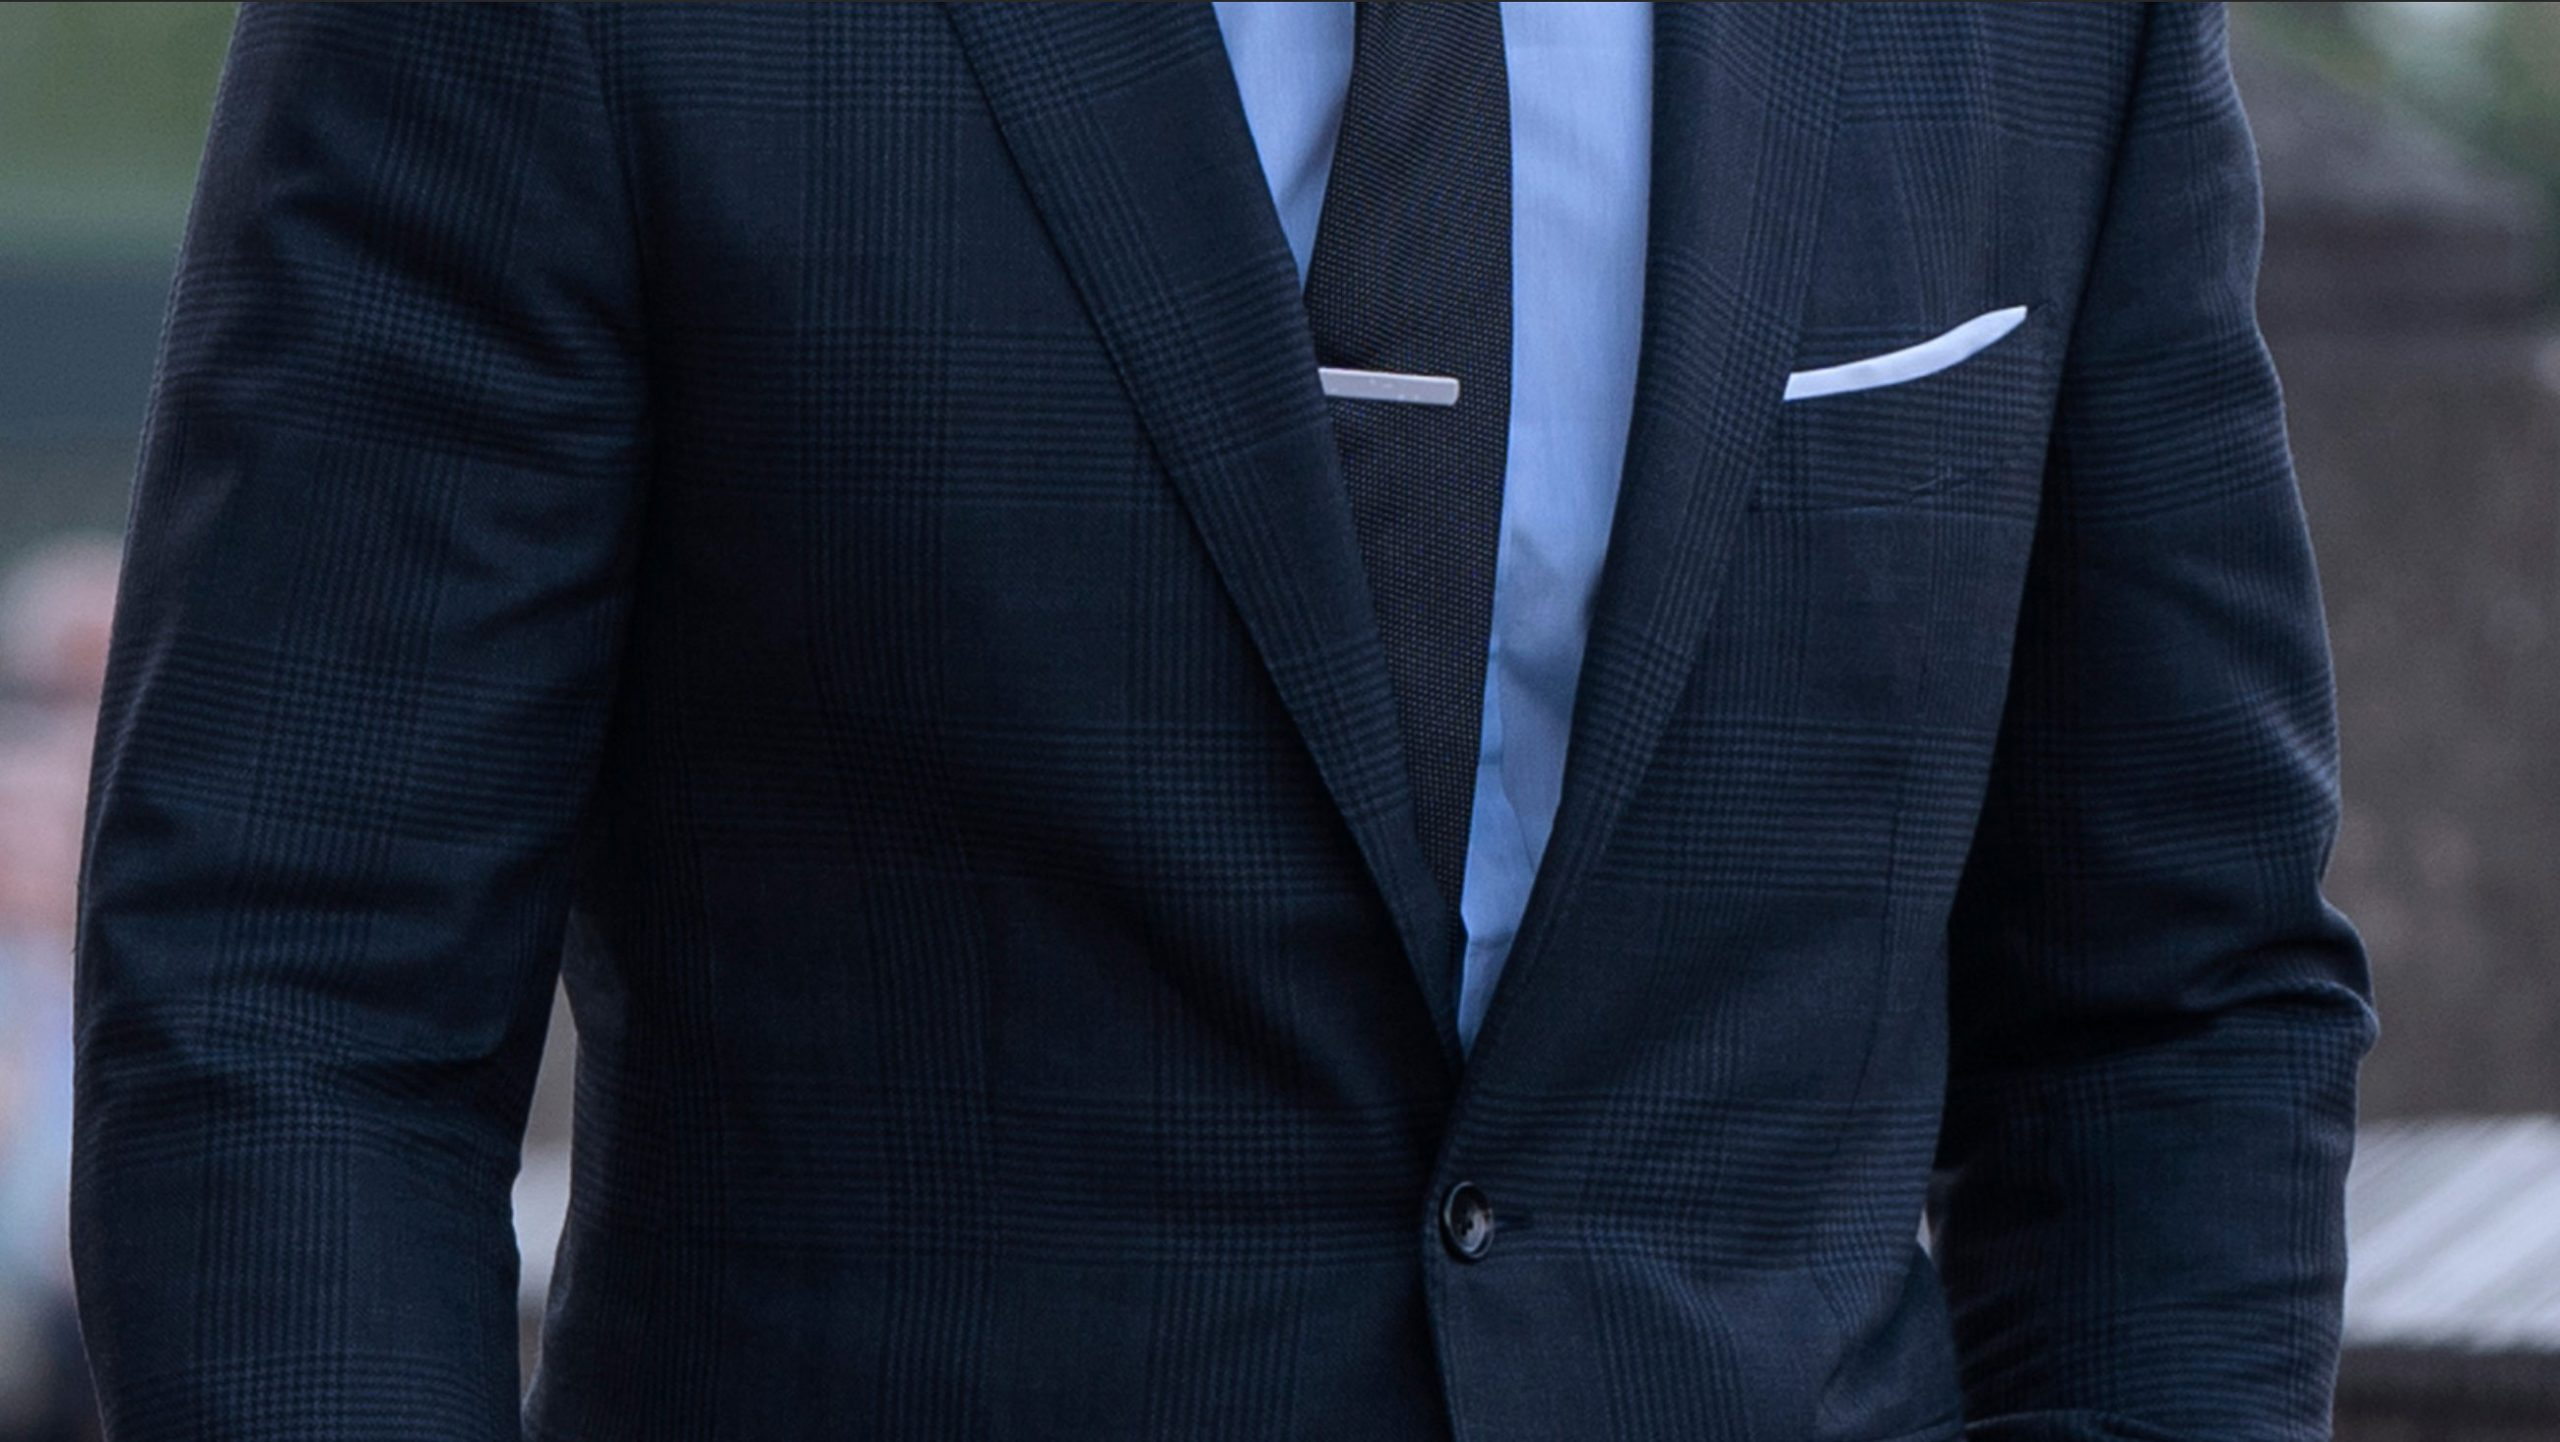 No Time To Die Tom Ford Ties close up